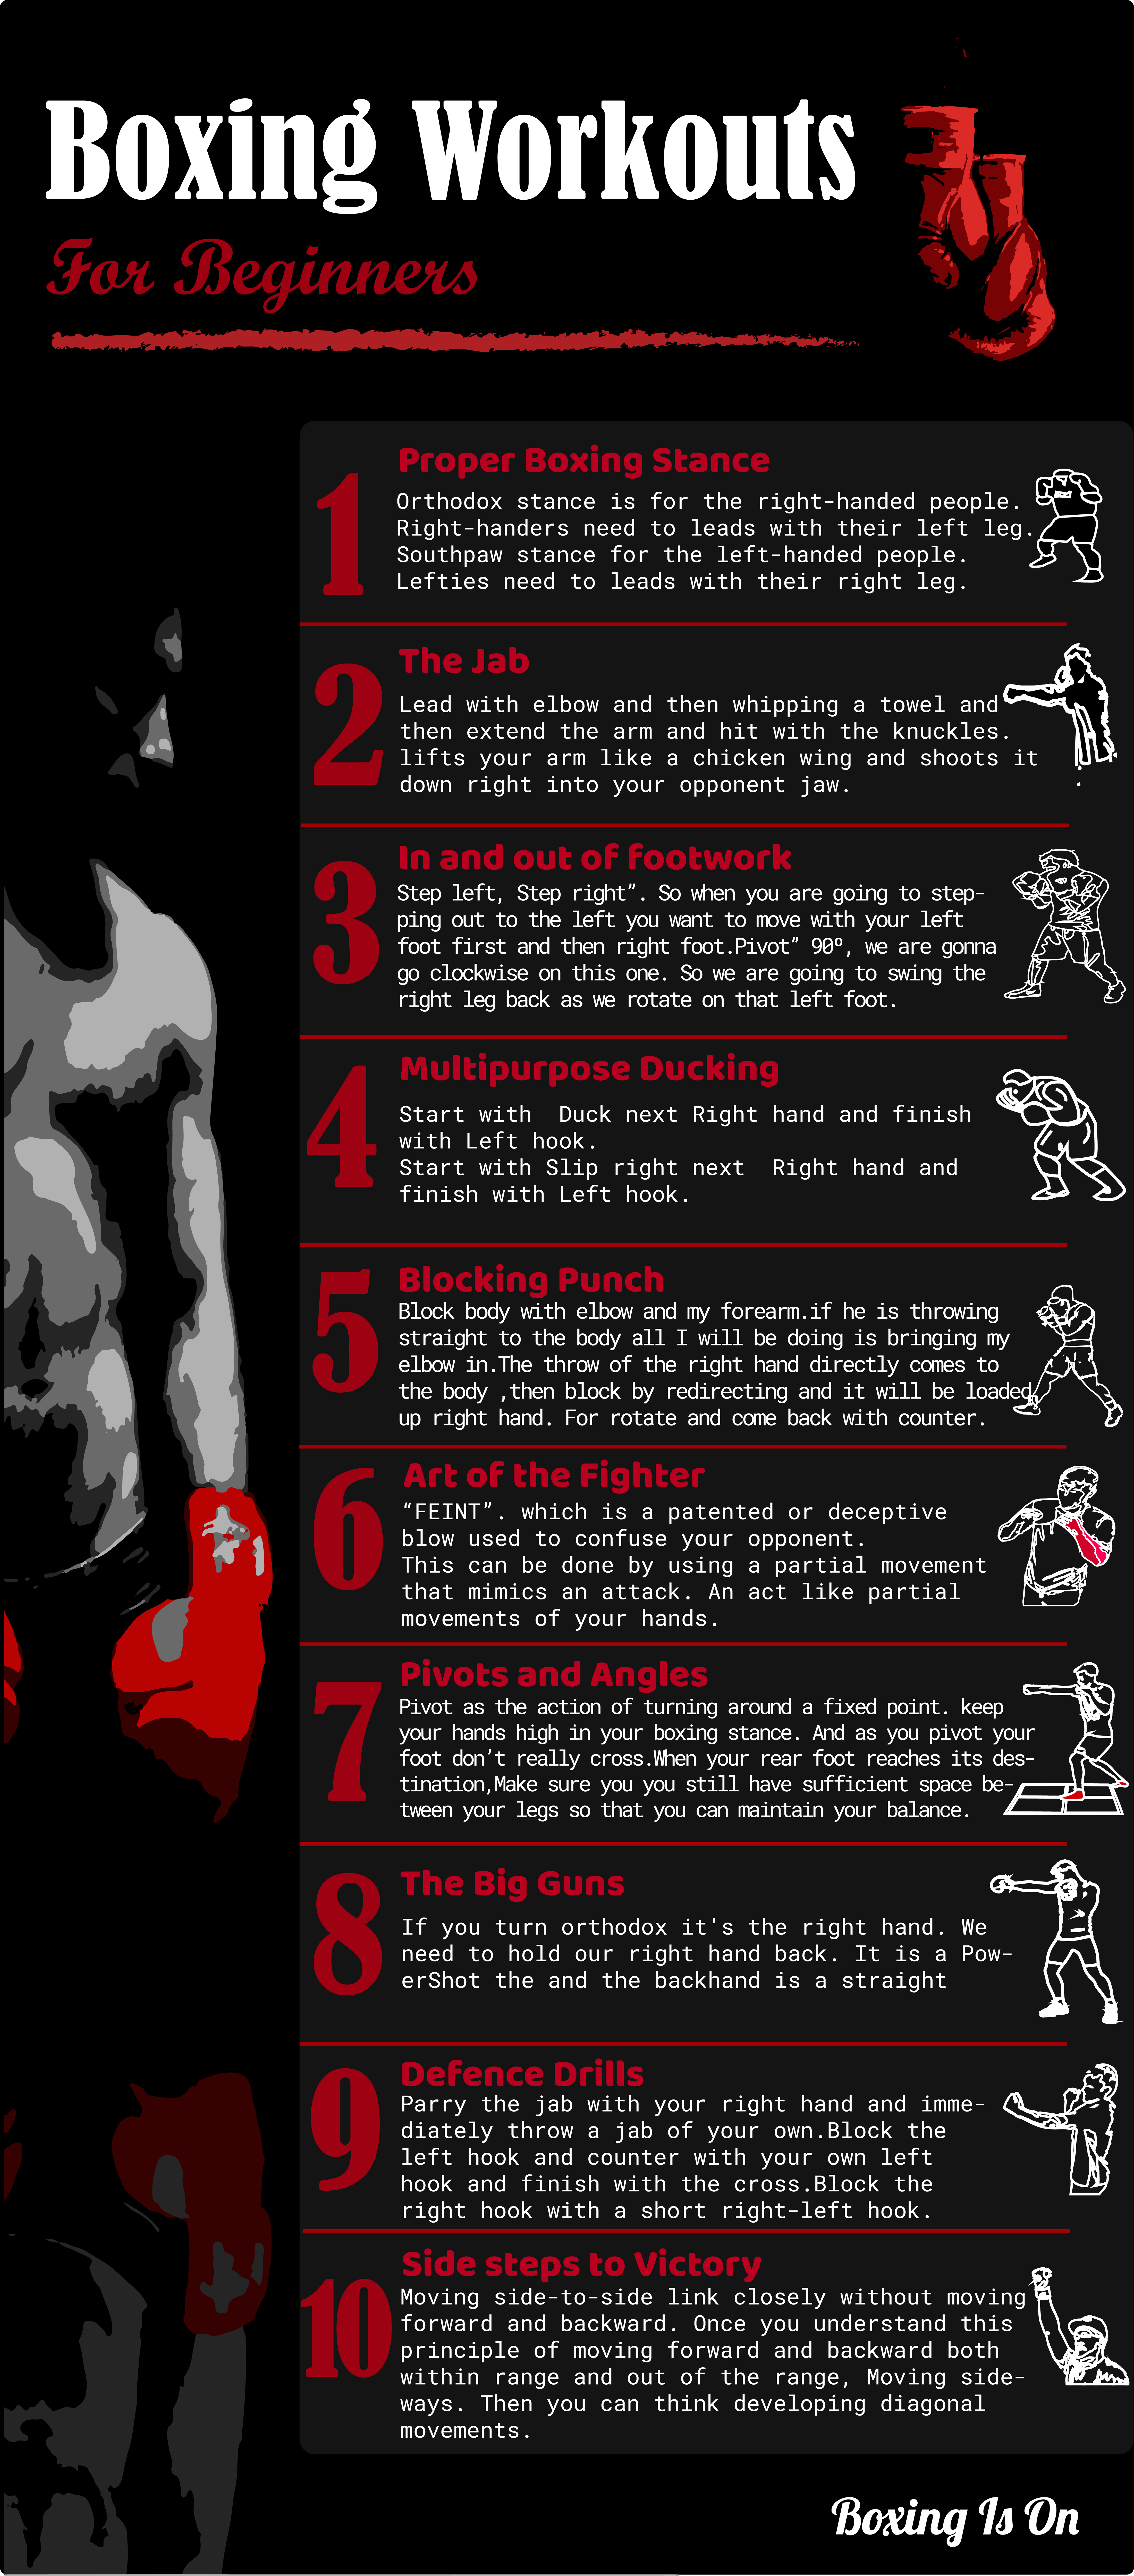 10 Boxing Workouts For Beginners